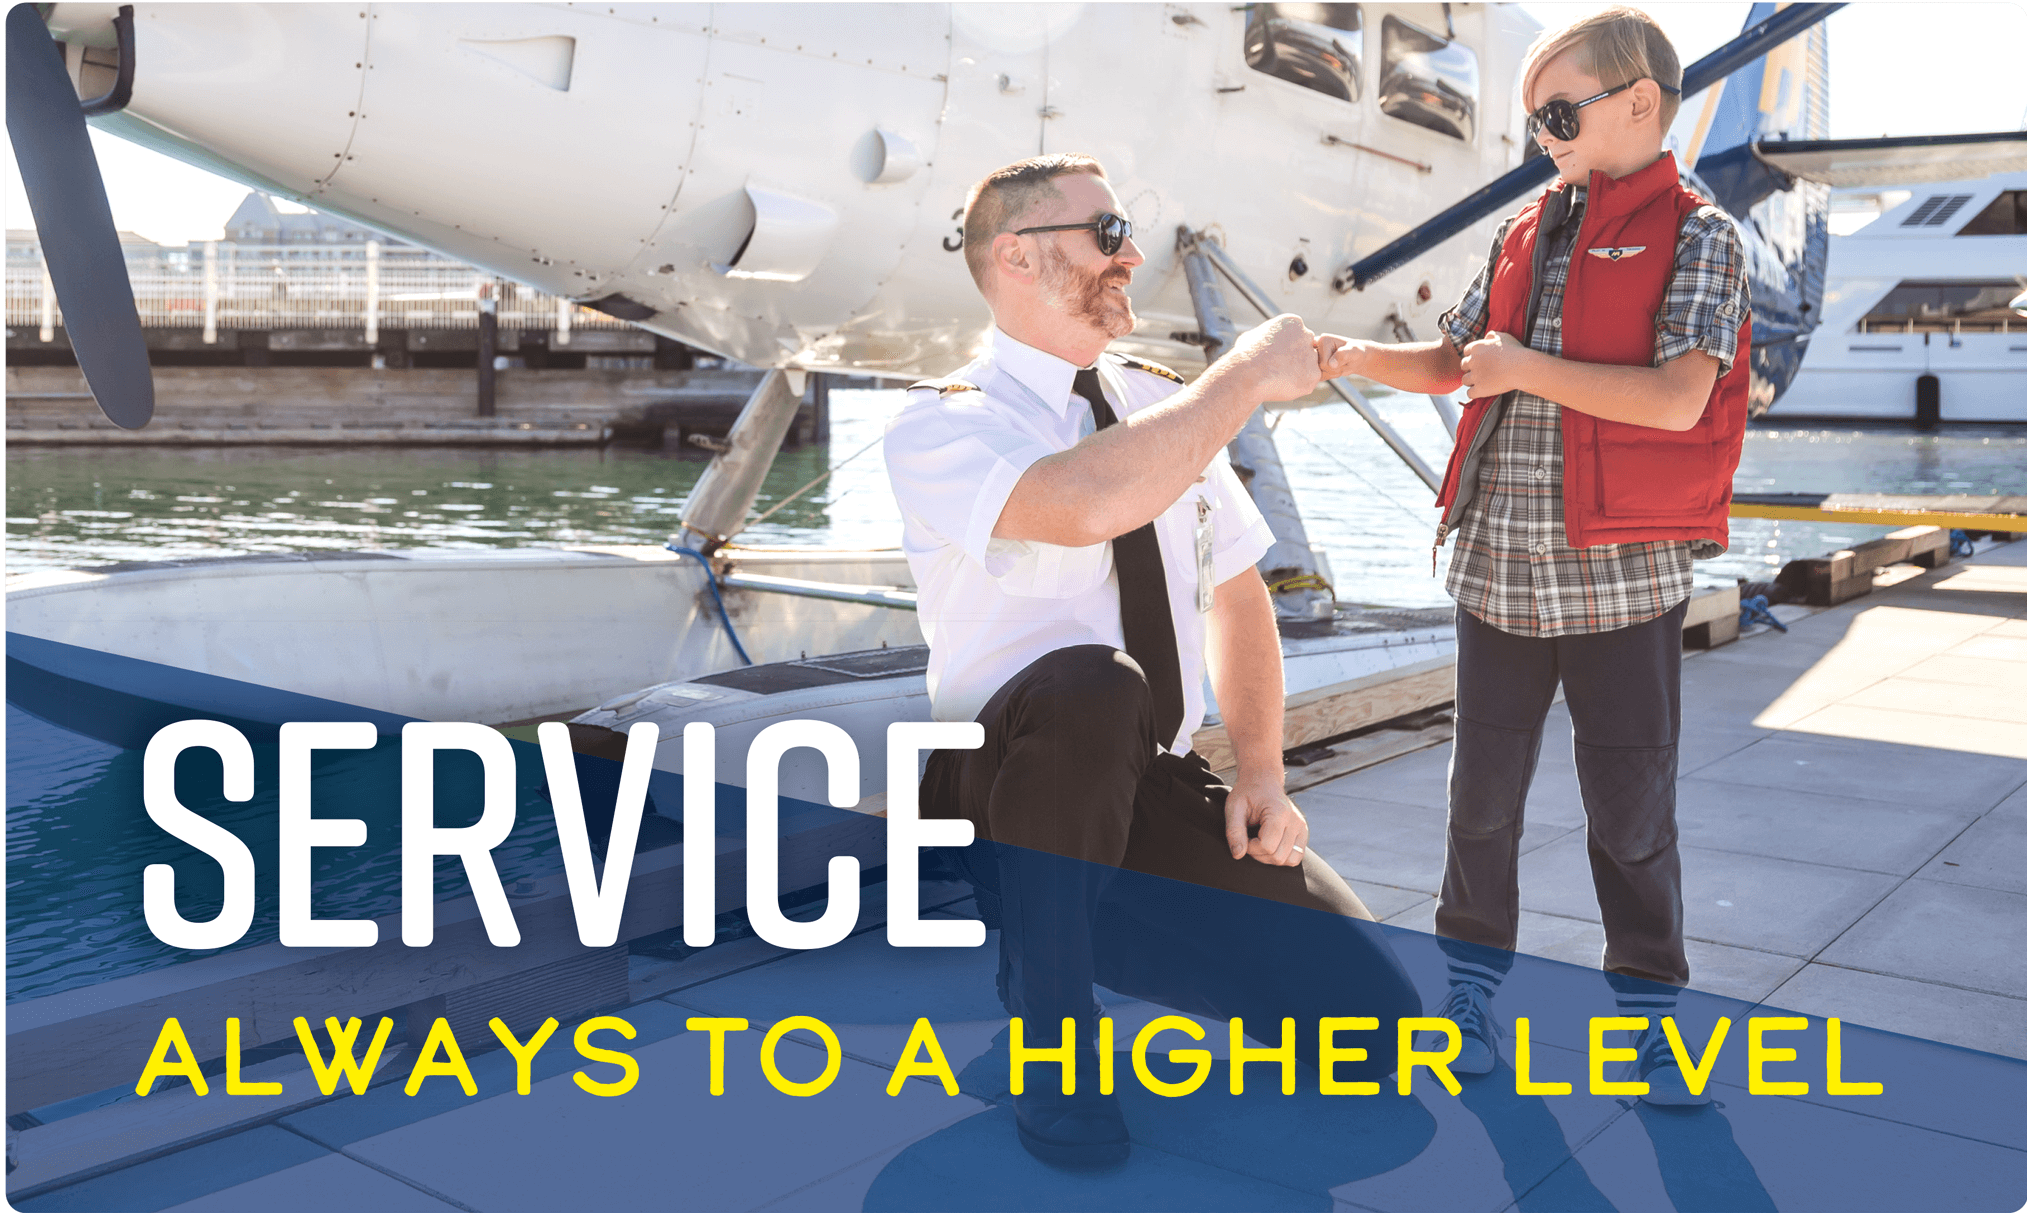 Service: Always to a higher level